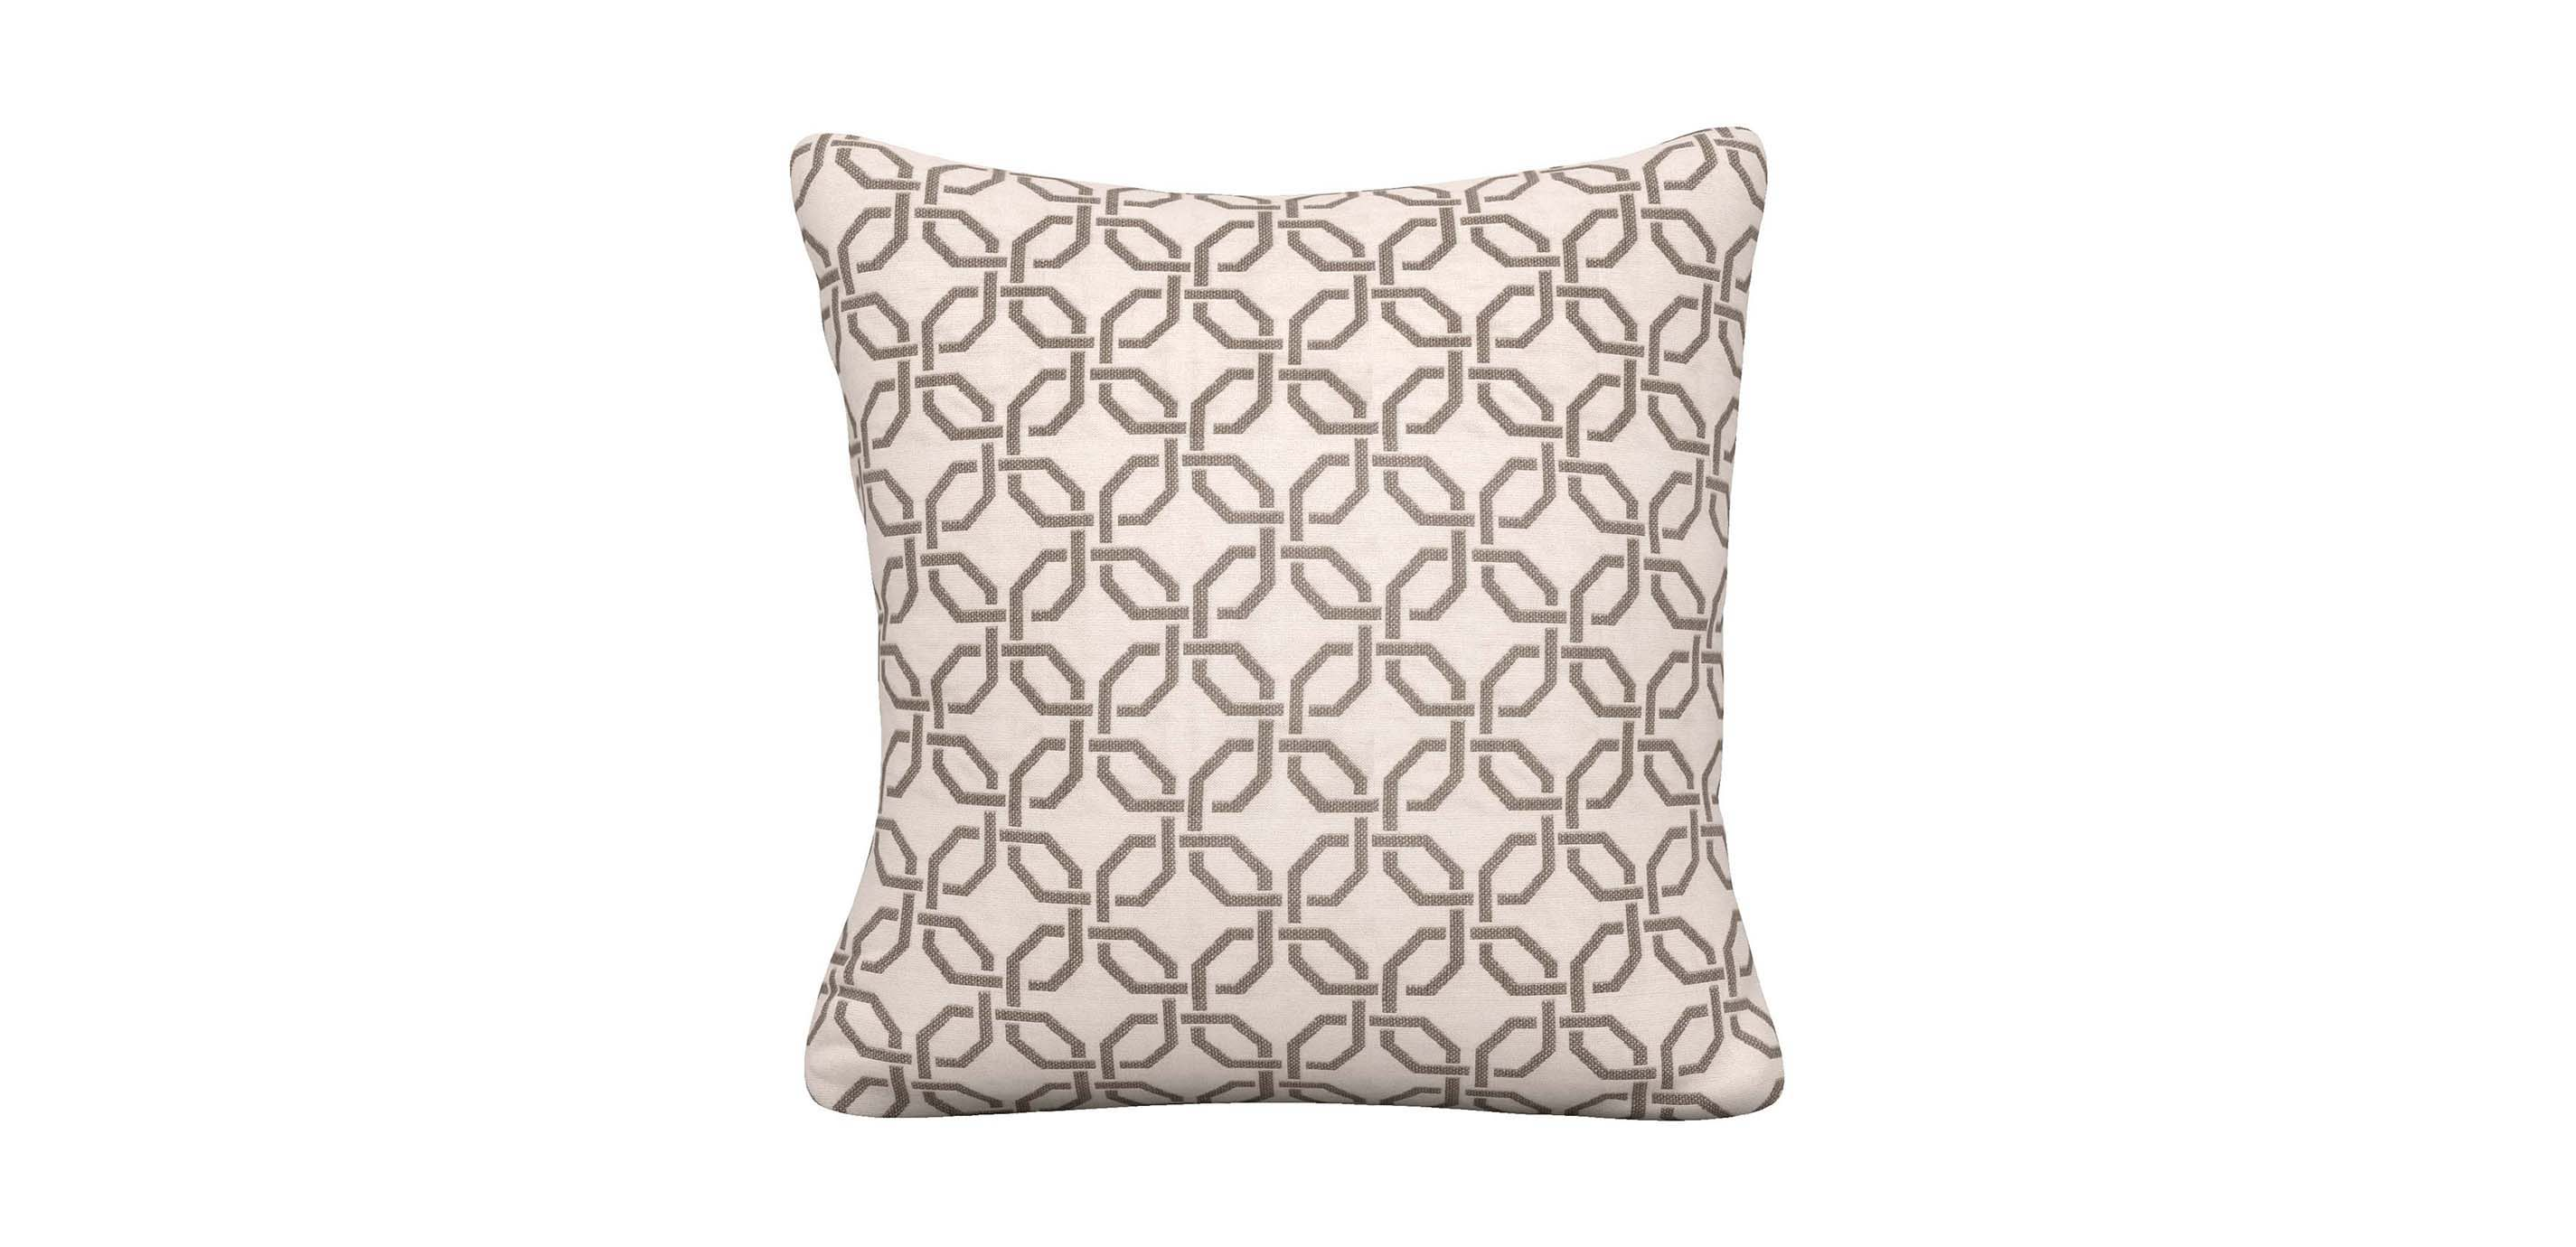 gray cushion styles gallery navy blanket pillows patio pillow black outdoor blue and majestic home modern